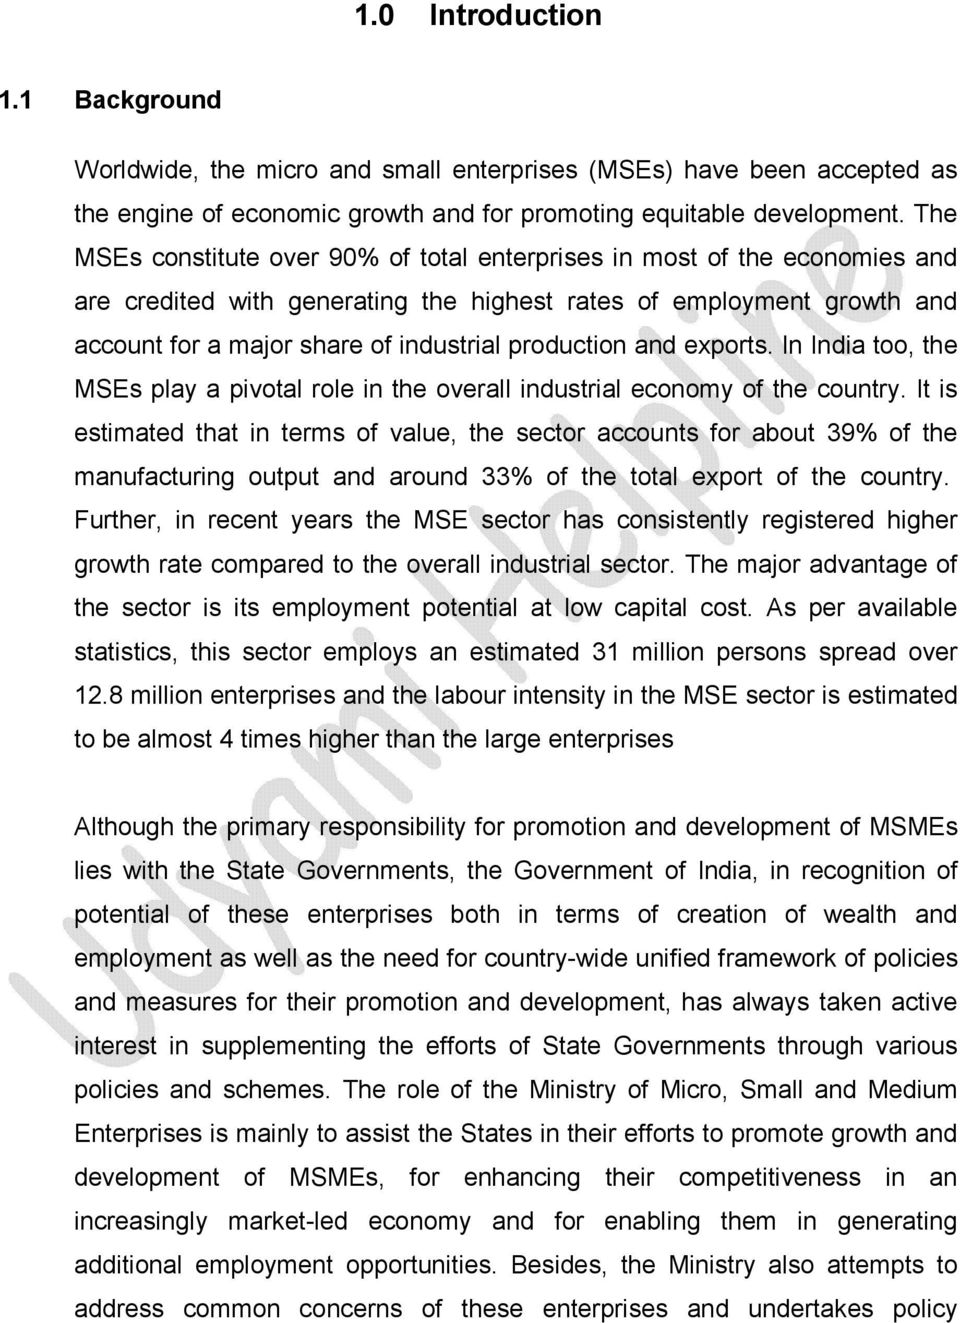 production and exports. In India too, the MSEs play a pivotal role in the overall industrial economy of the country.